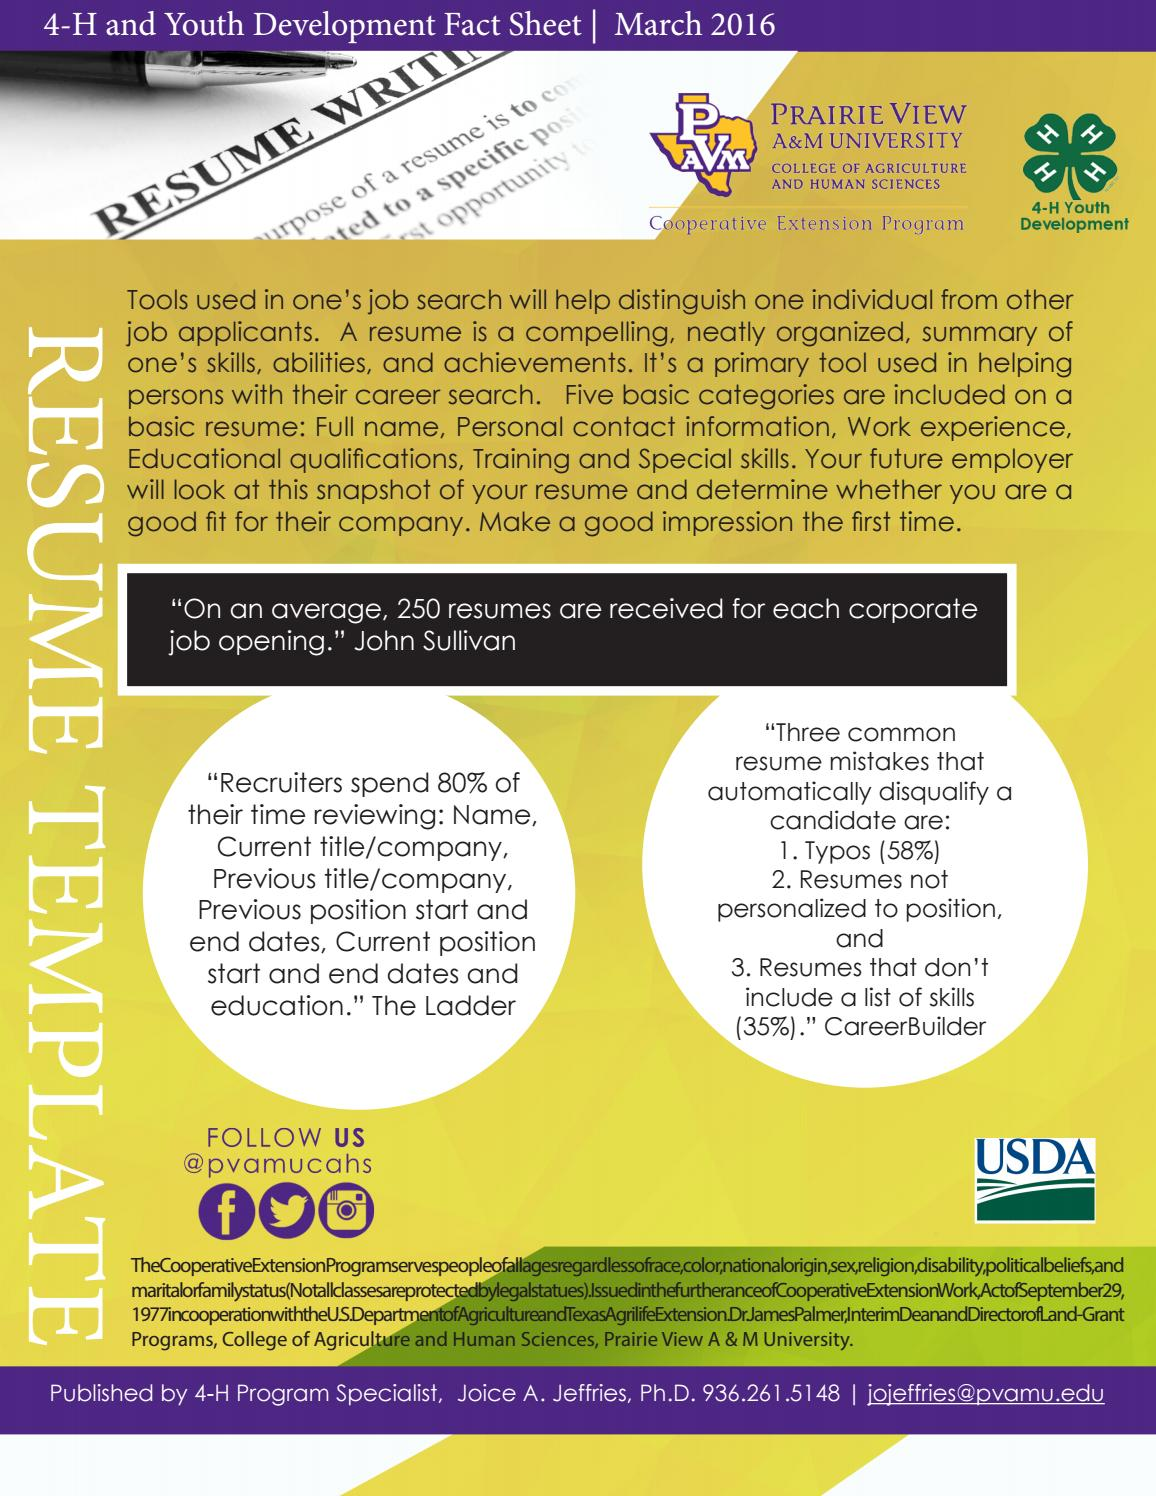 4 h and youth development resume fact sheet template by